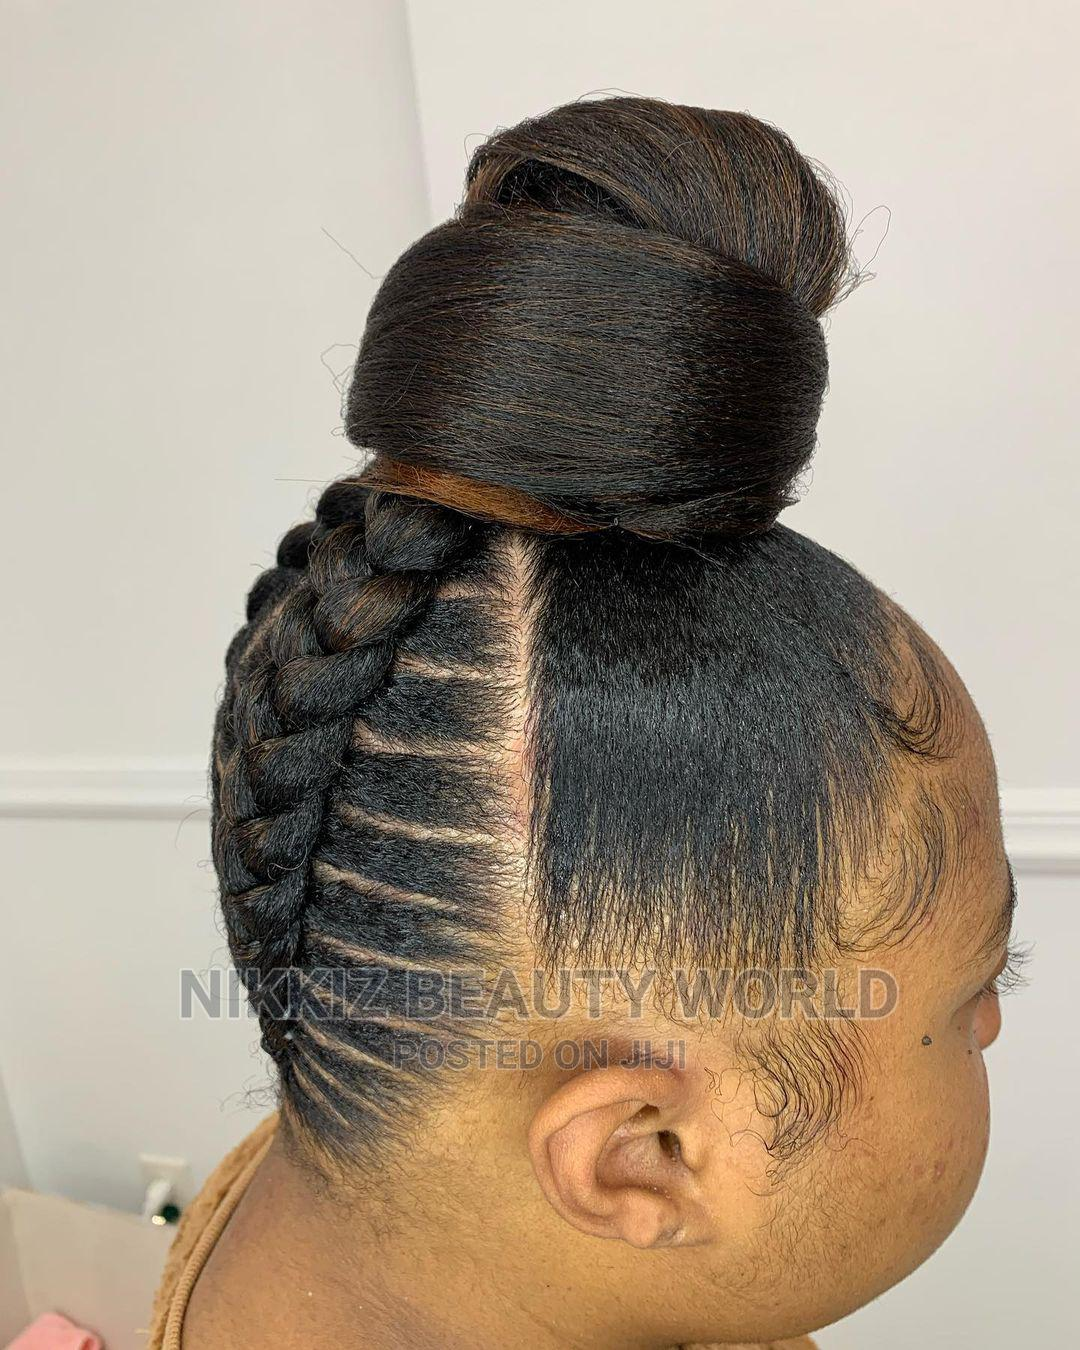 Hair Salon Services | Health & Beauty Services for sale in Victoria Island, Lagos State, Nigeria